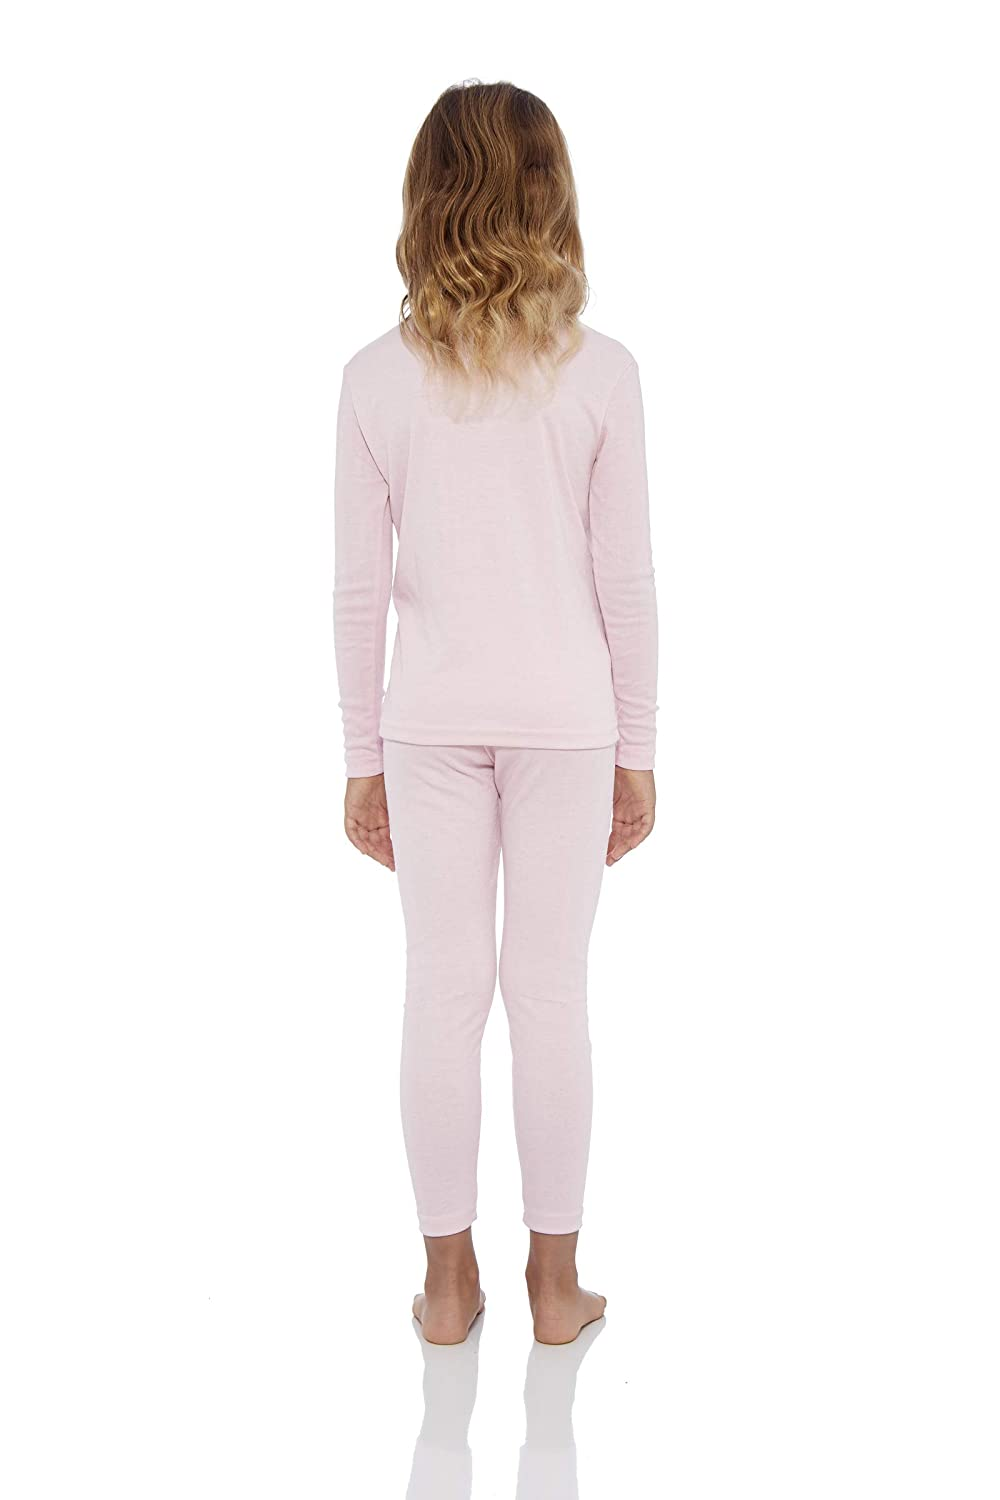 Rocky Girls Smooth Knit Thermal Underwear 2PC Set Long John Top and Bottom Pajamas